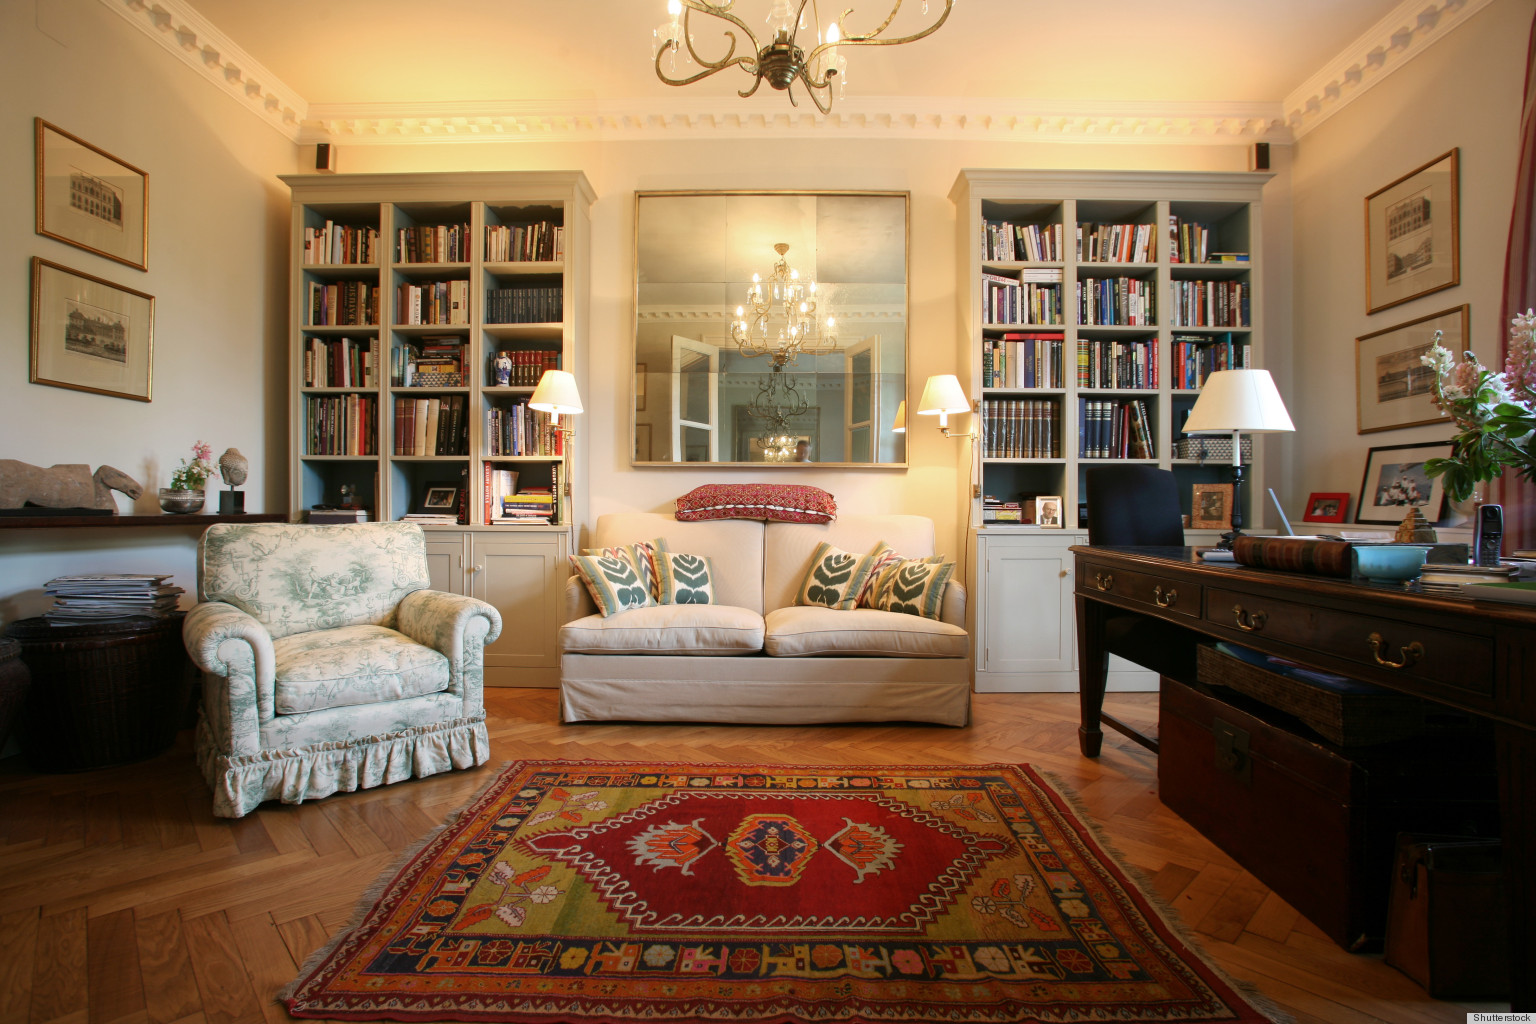 How Decorating With Books Personalizes A Home  HuffPost